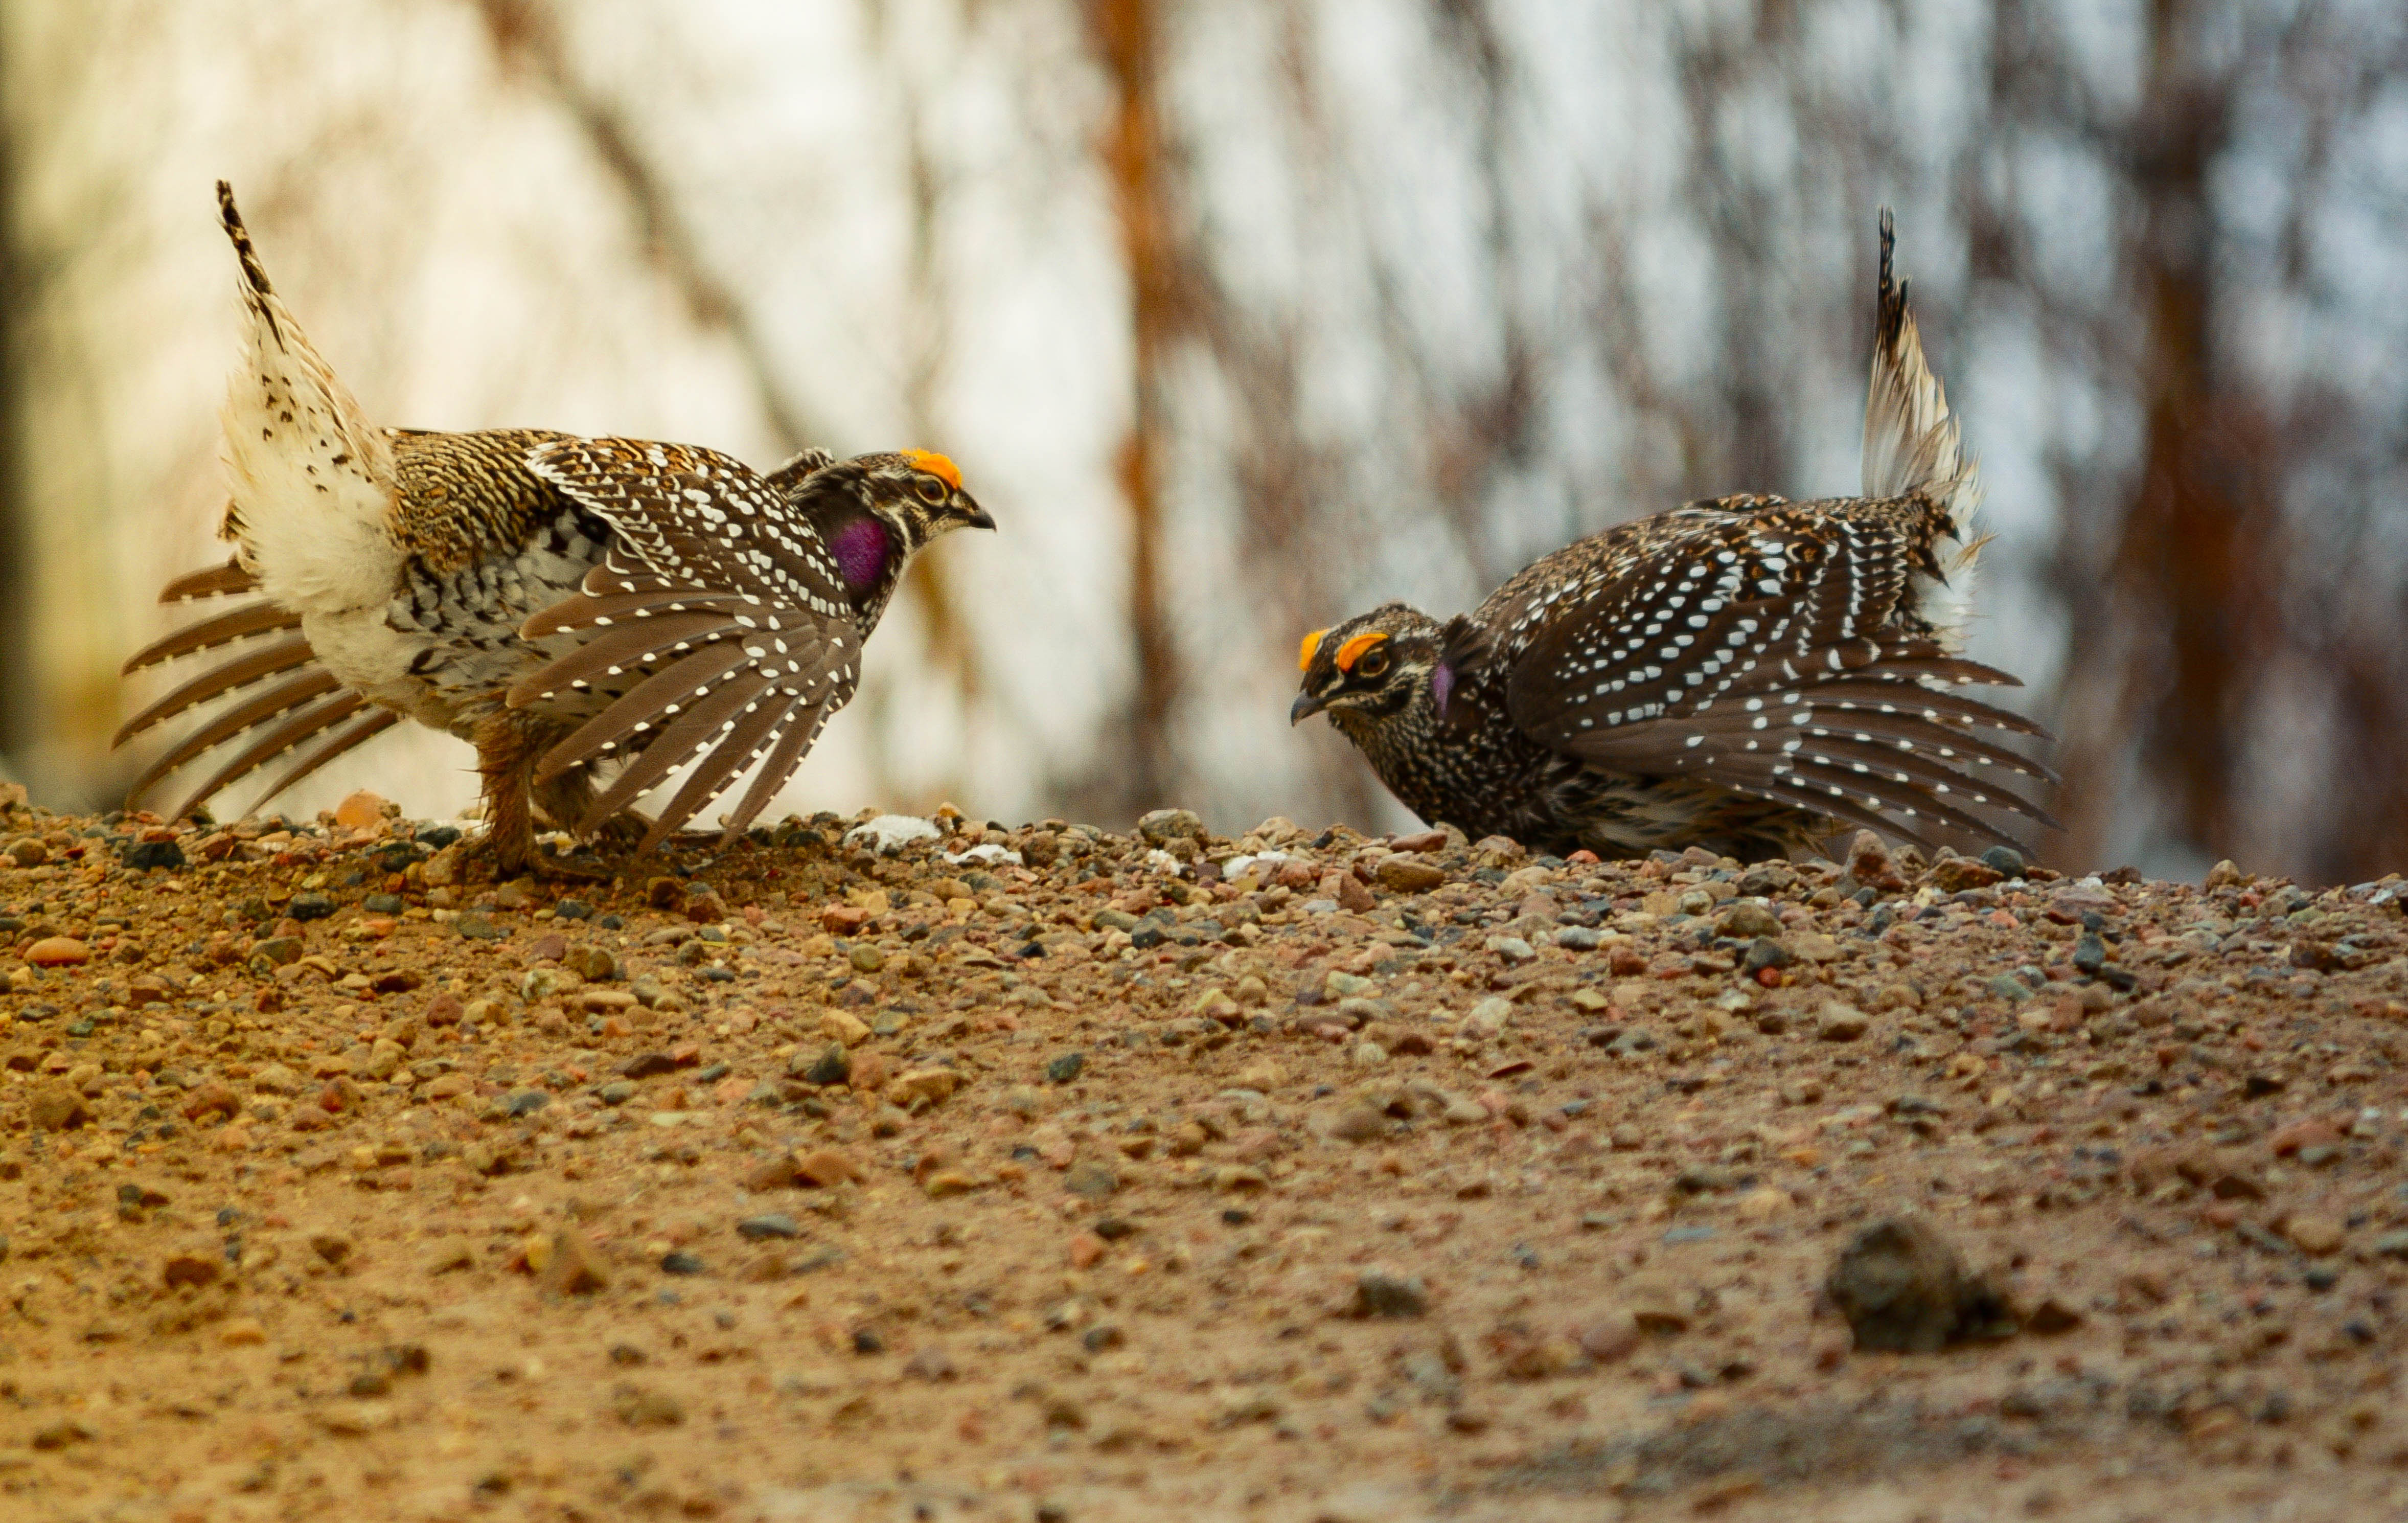 Sharp-tailed grouse duelling this past spring in Northeastern BC -Photo by Michelle Knaggs